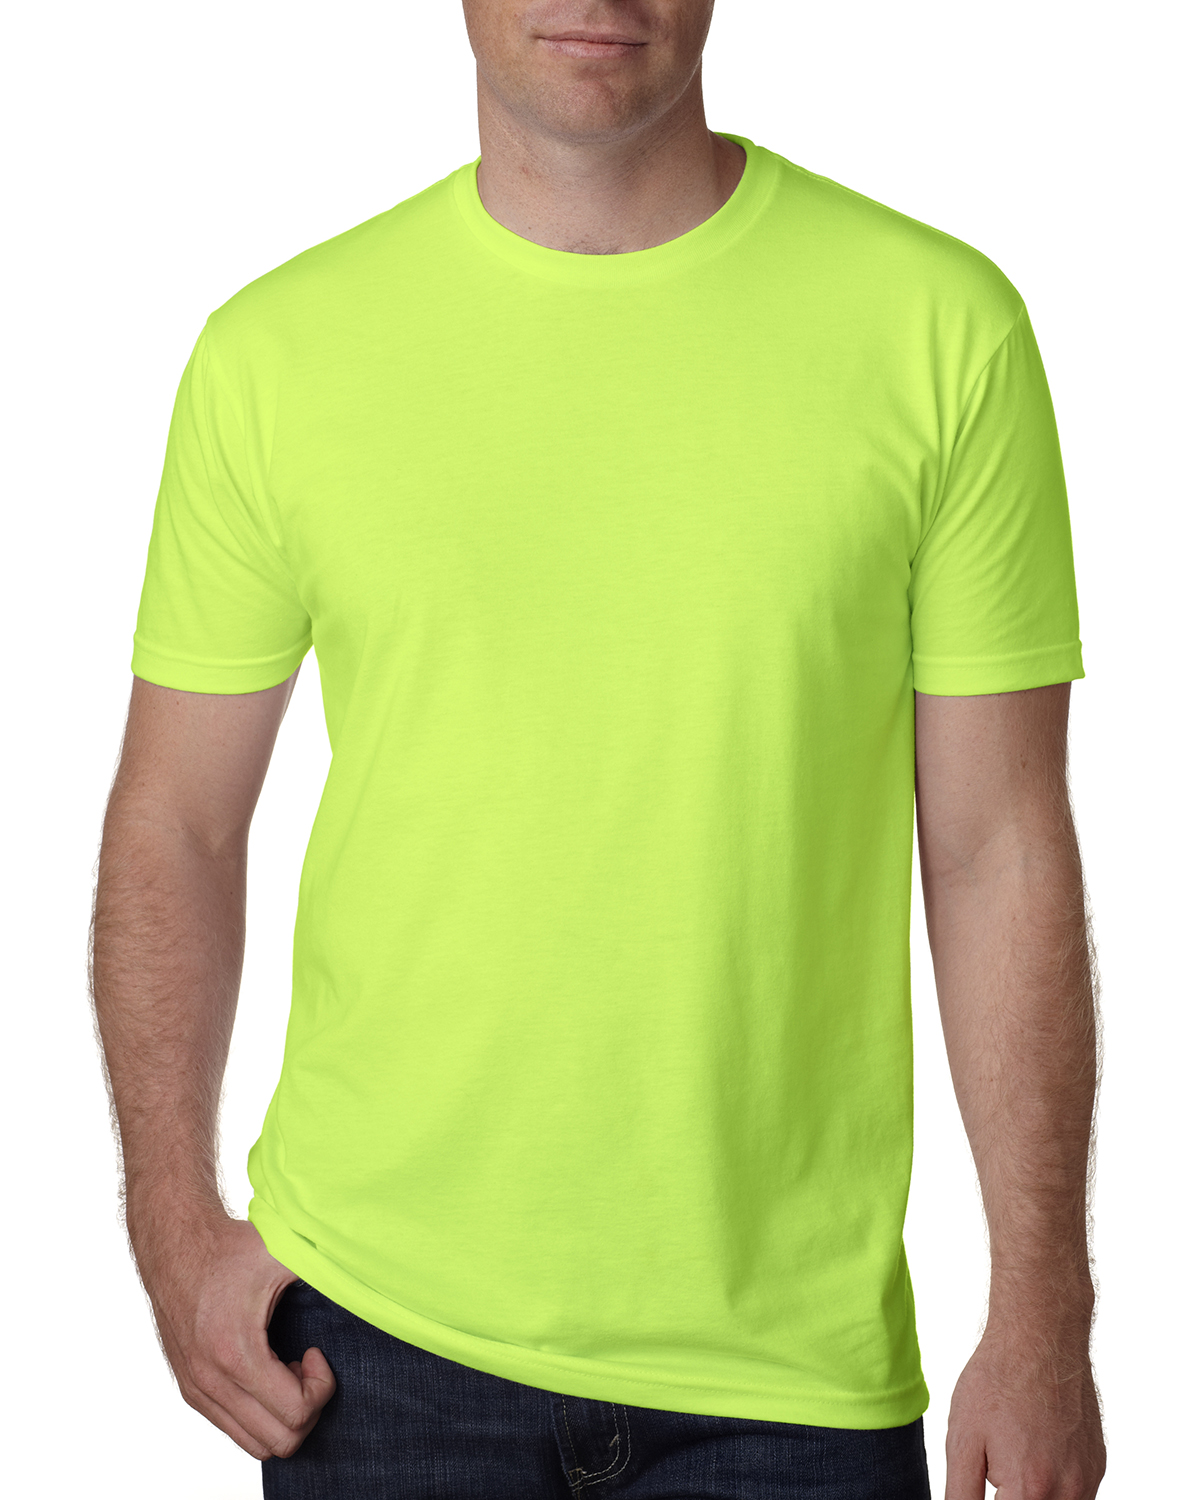 click to view Neon Hthr Green